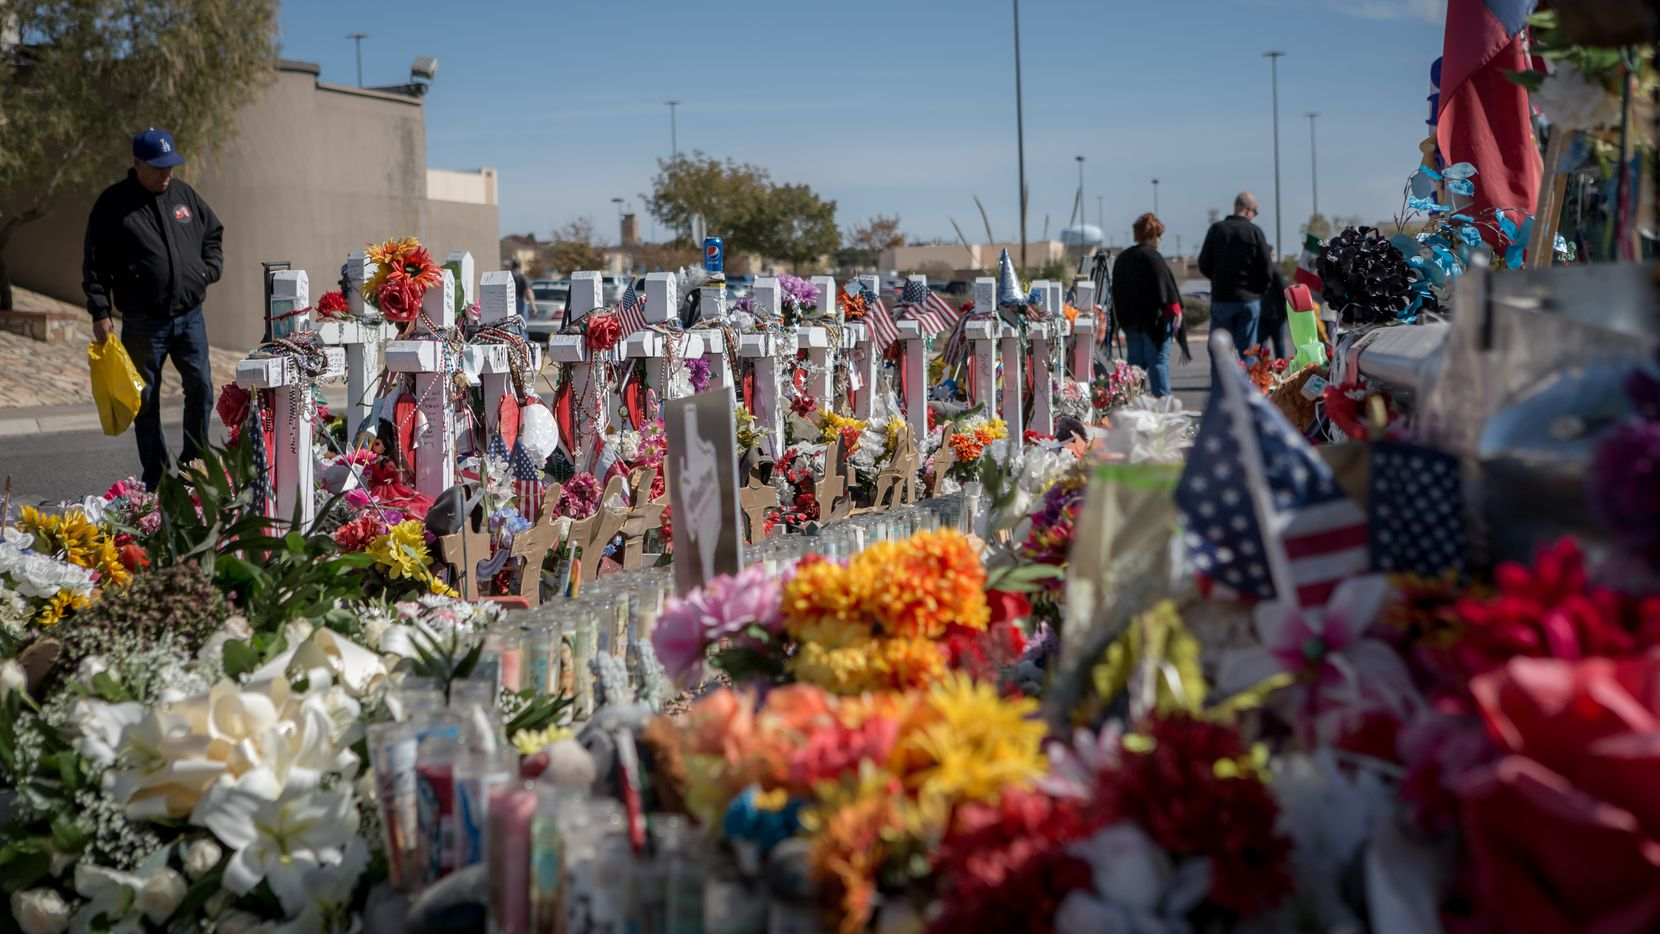 Friends and families of the victims of the August 3 massacre in El Paso visit the site of the Walmart where the shooting occurred.